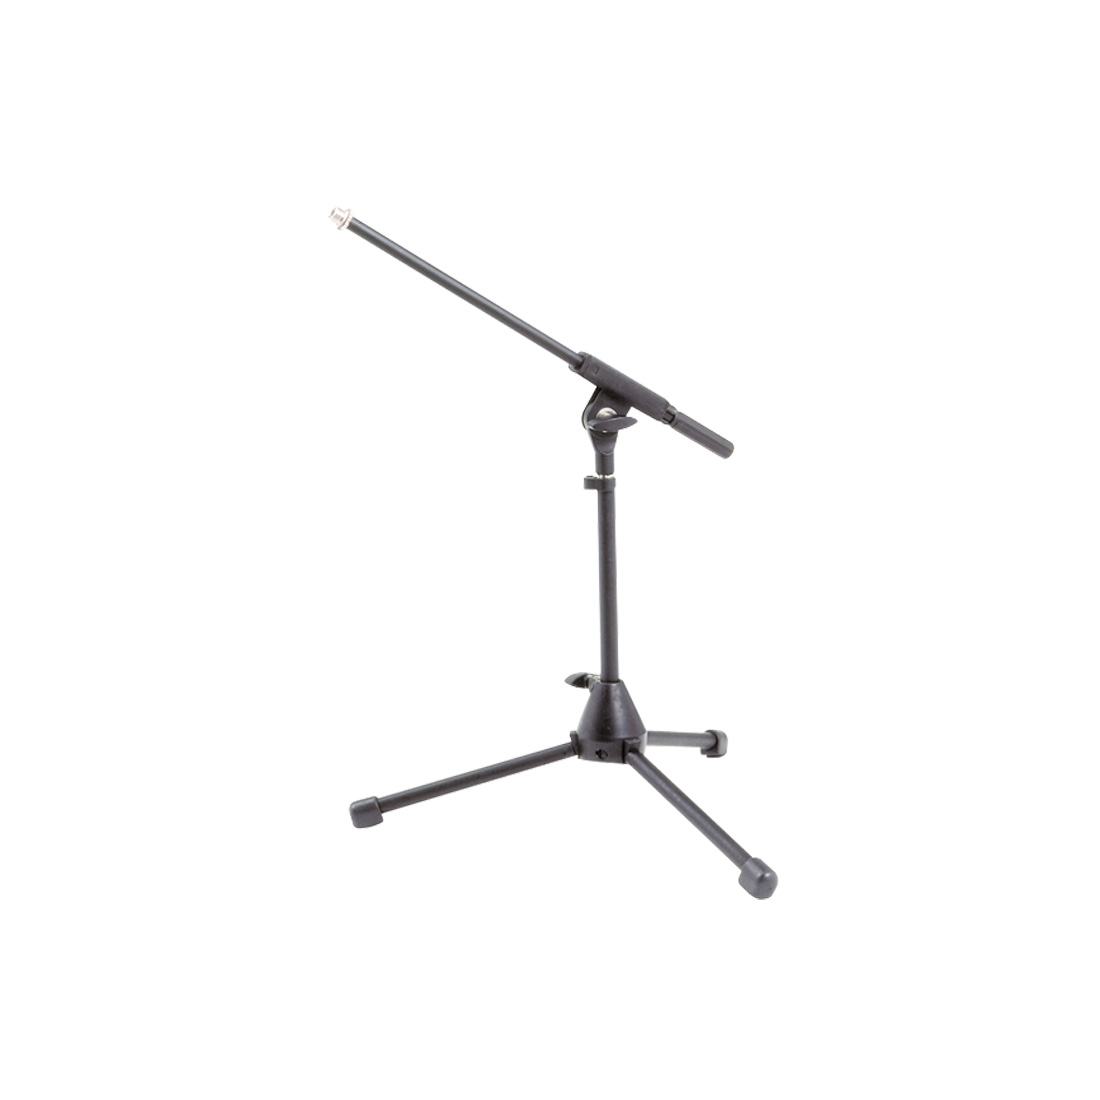 Australian Monitor Atc101 Microphone Stand Vision One